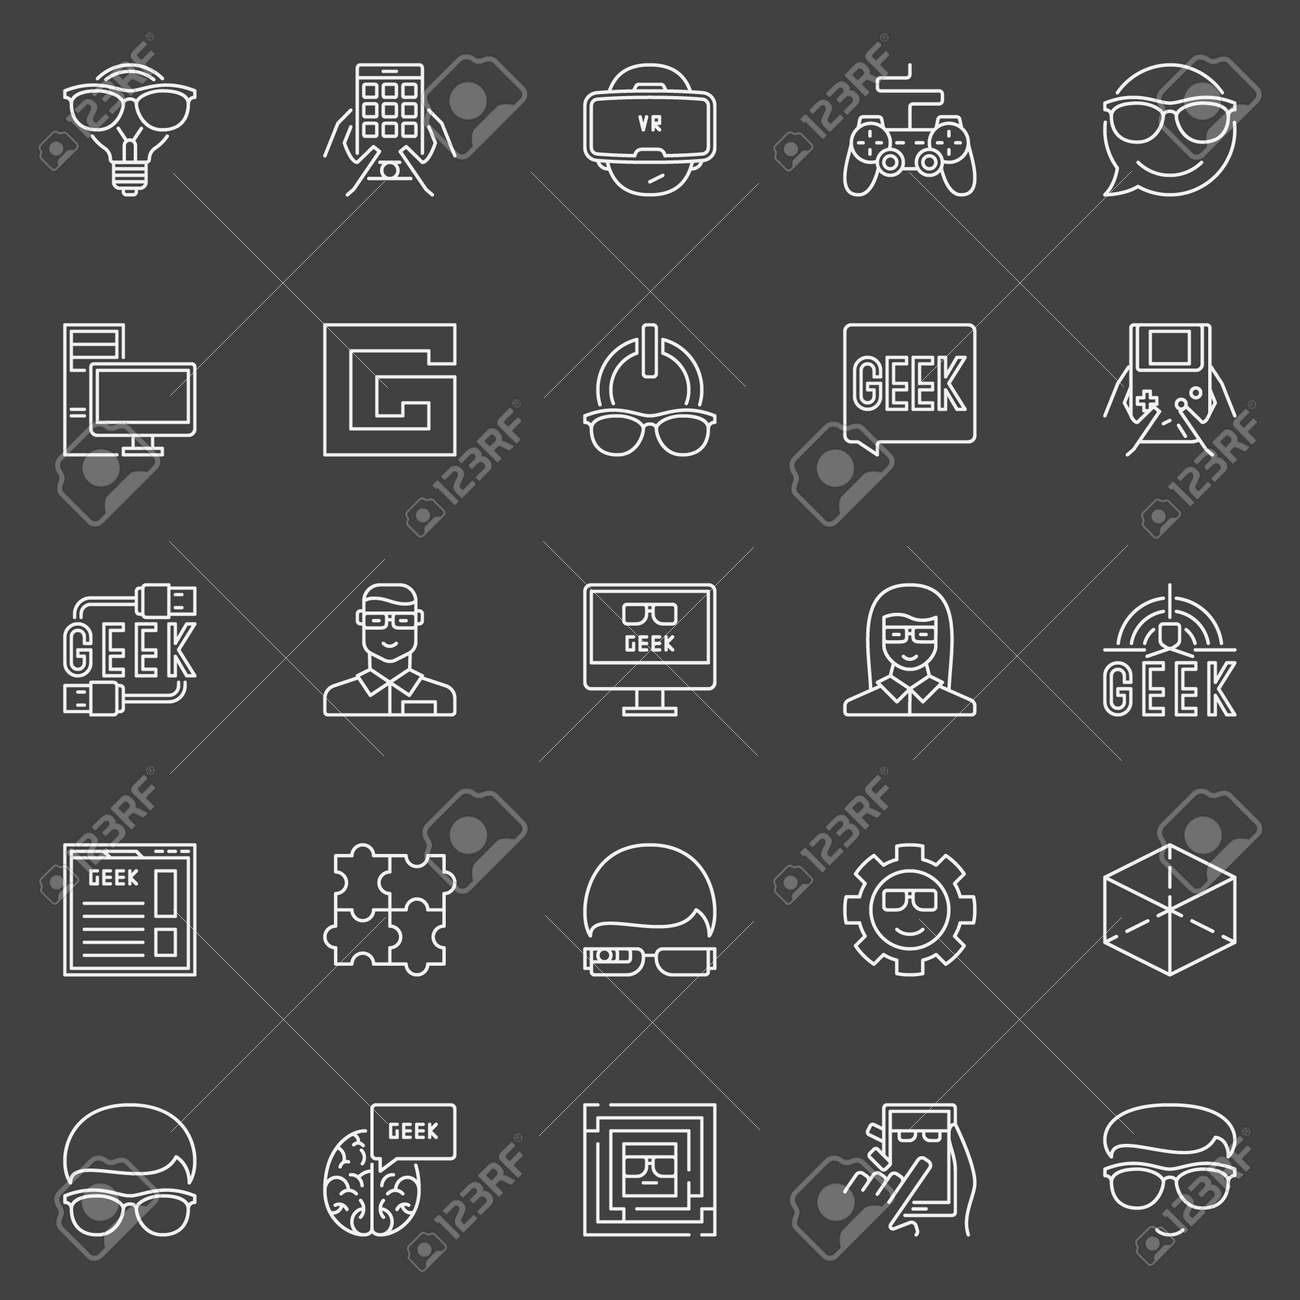 Geek Line Vector Icons Collection Of Faces With Glasses Outline